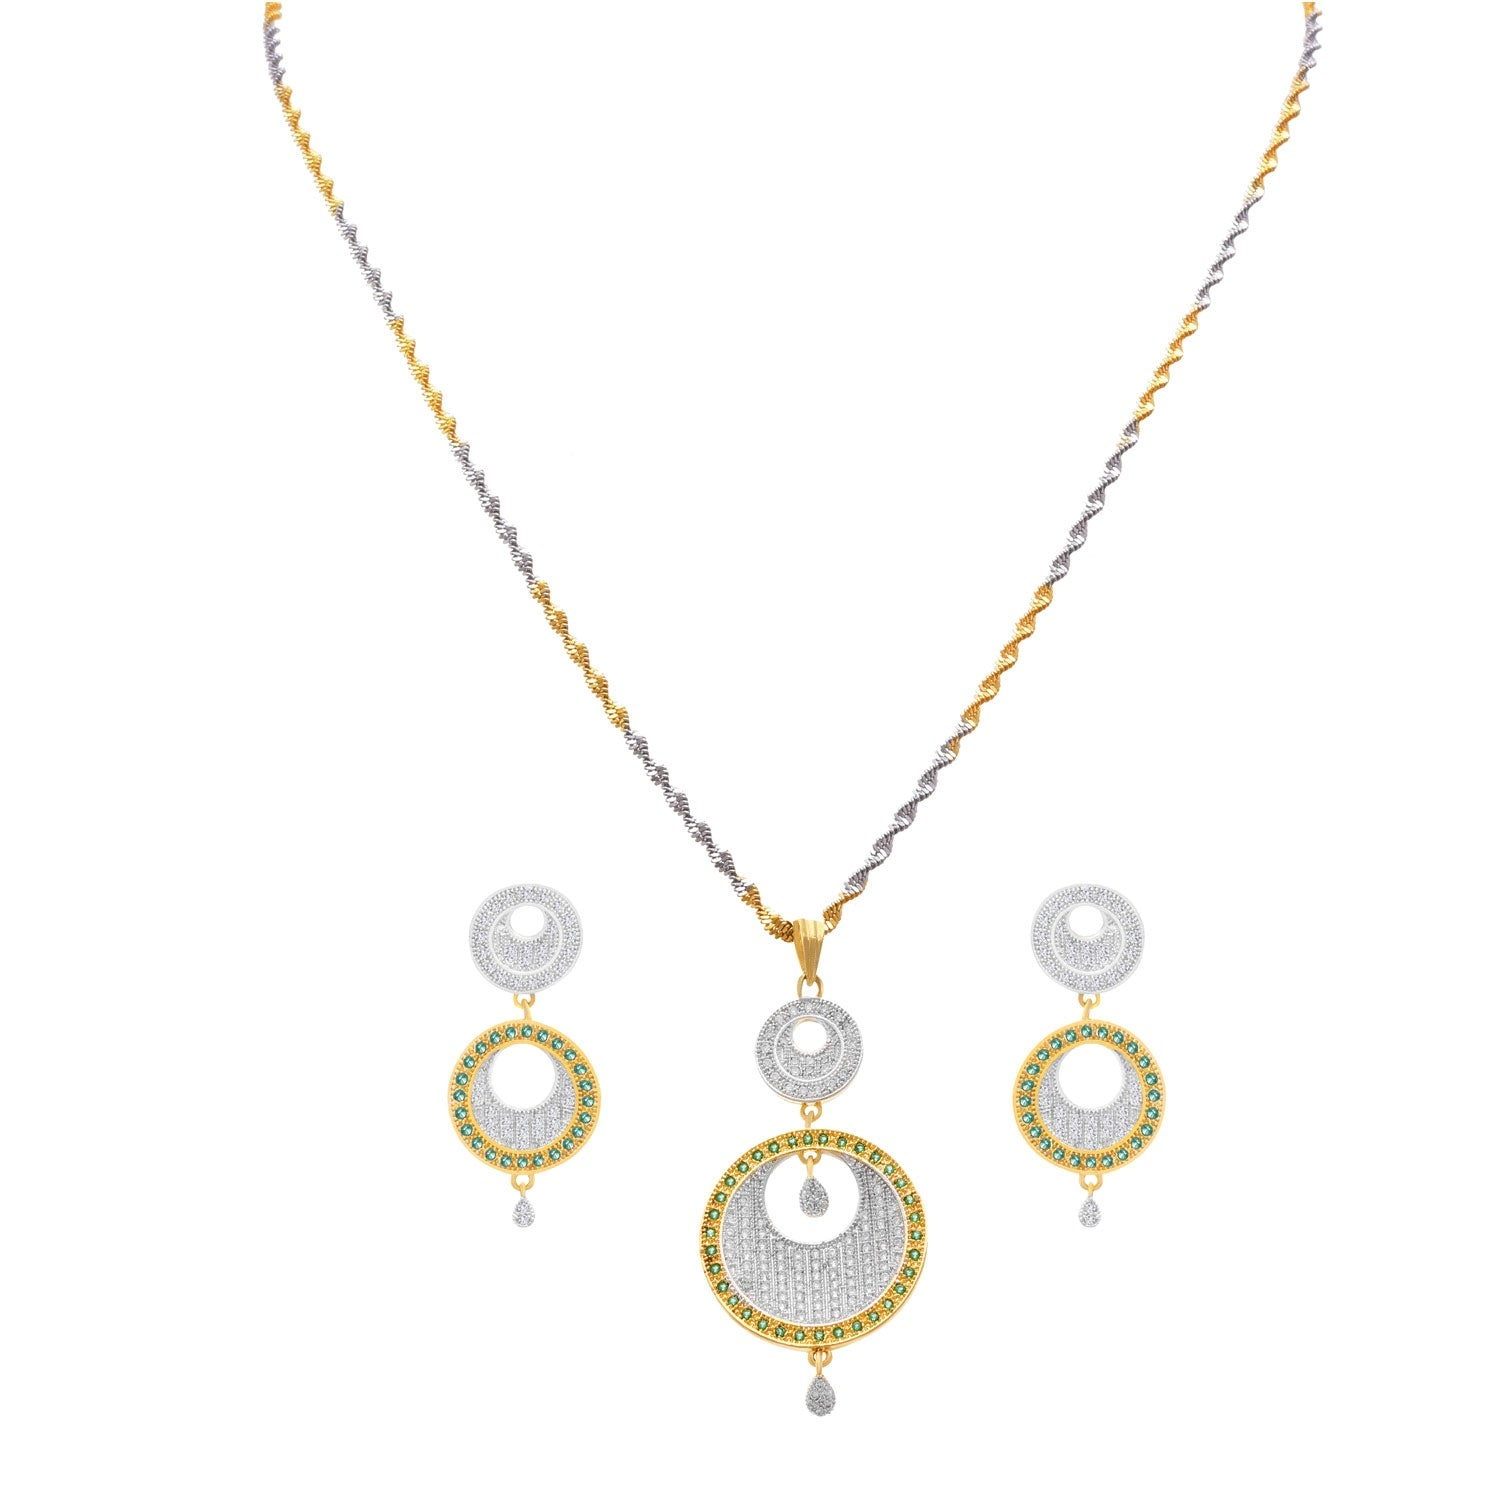 JFL - Ethnic Stylish One Gram Gold & Silver Plated Cz American Diamond Designer Pendant Set for Women and Girls.